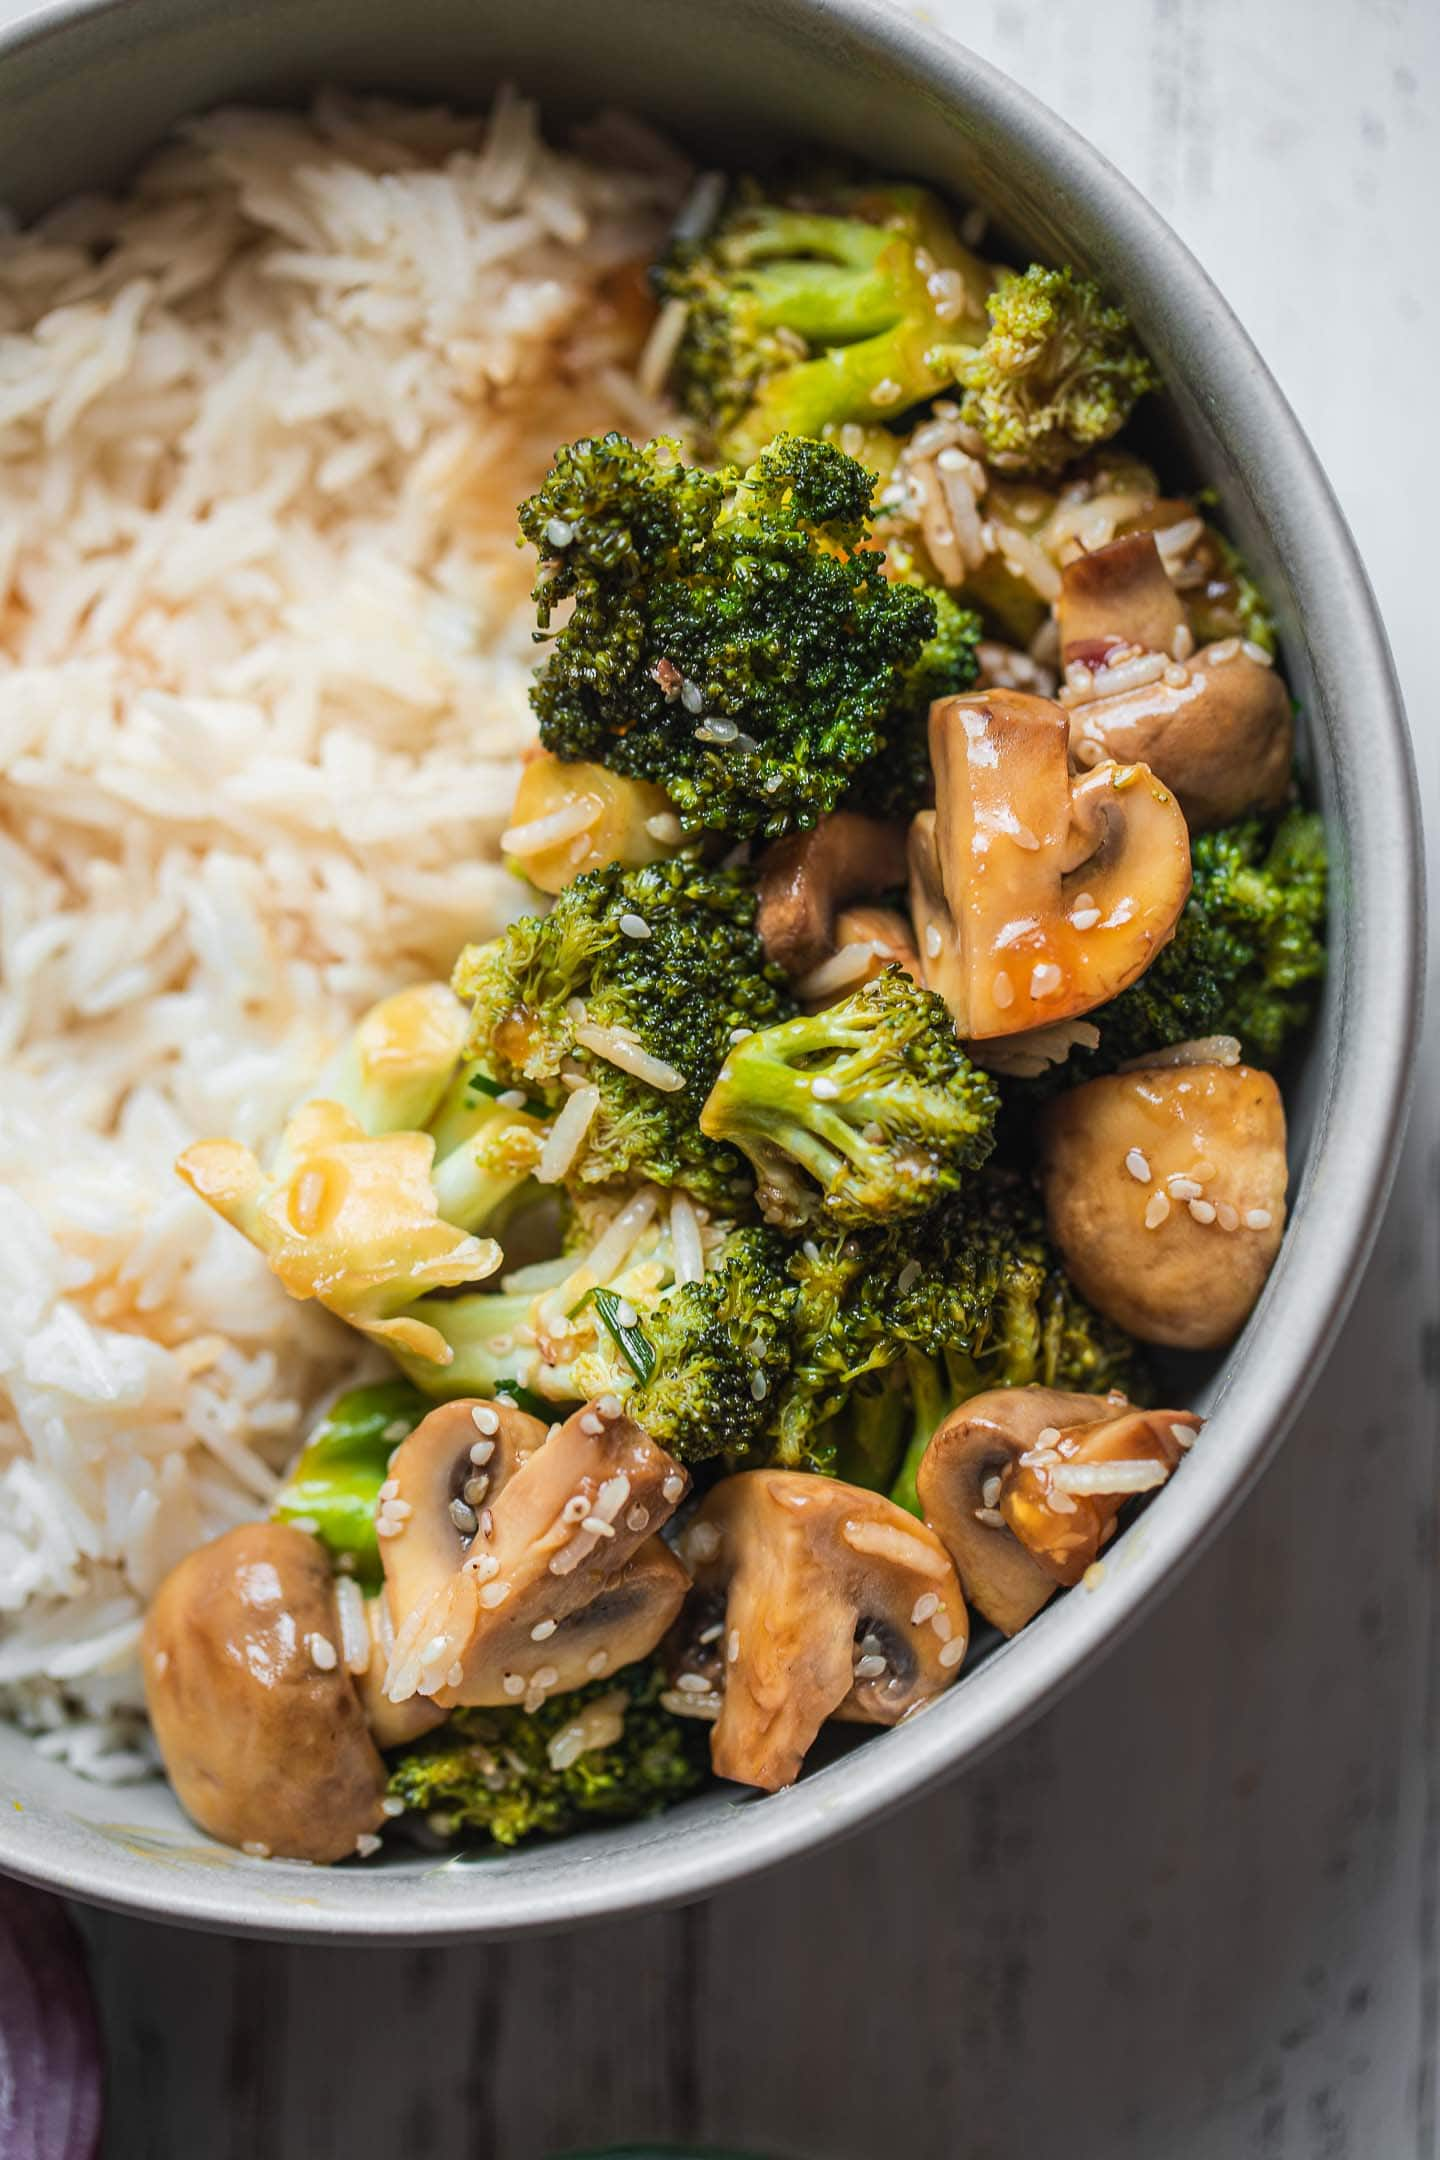 Closeup of vegan broccoli stir fry with rice